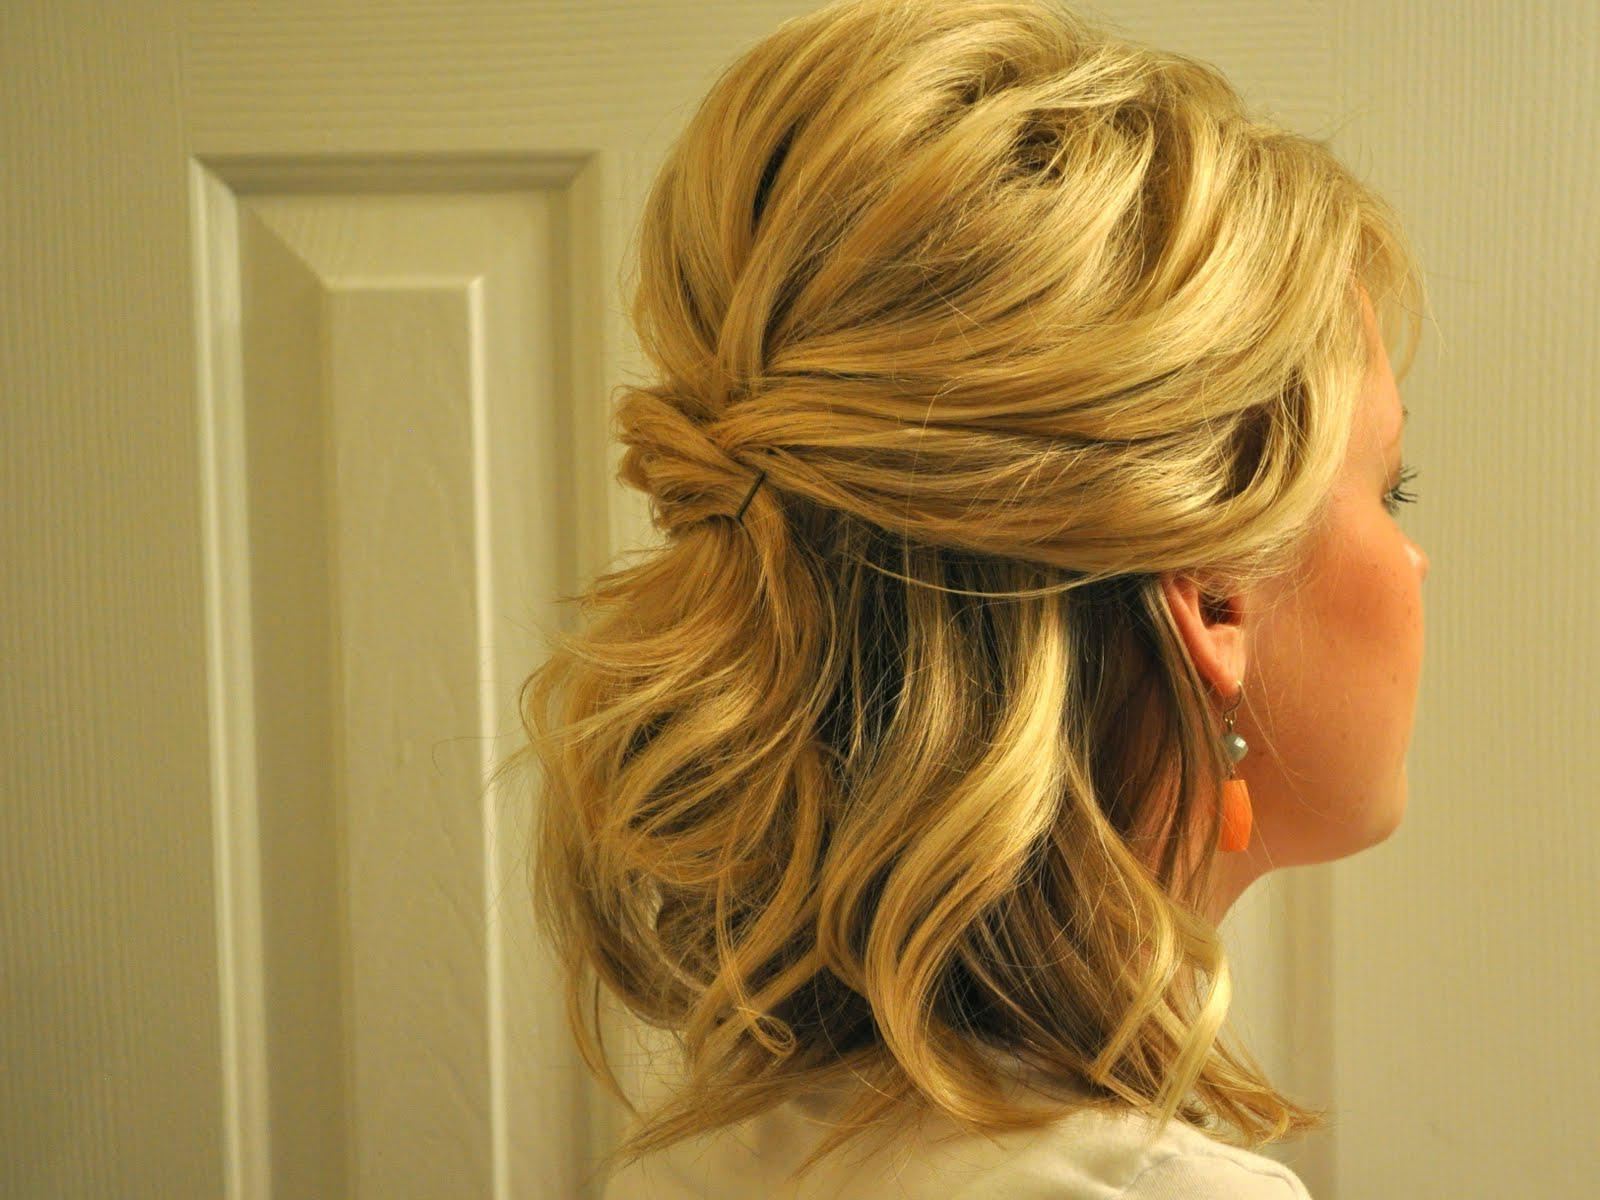 Bridesmaid Hairstyles For Medium Hair – Leymatson In Popular Medium Hairstyles For Bridesmaids (View 5 of 20)